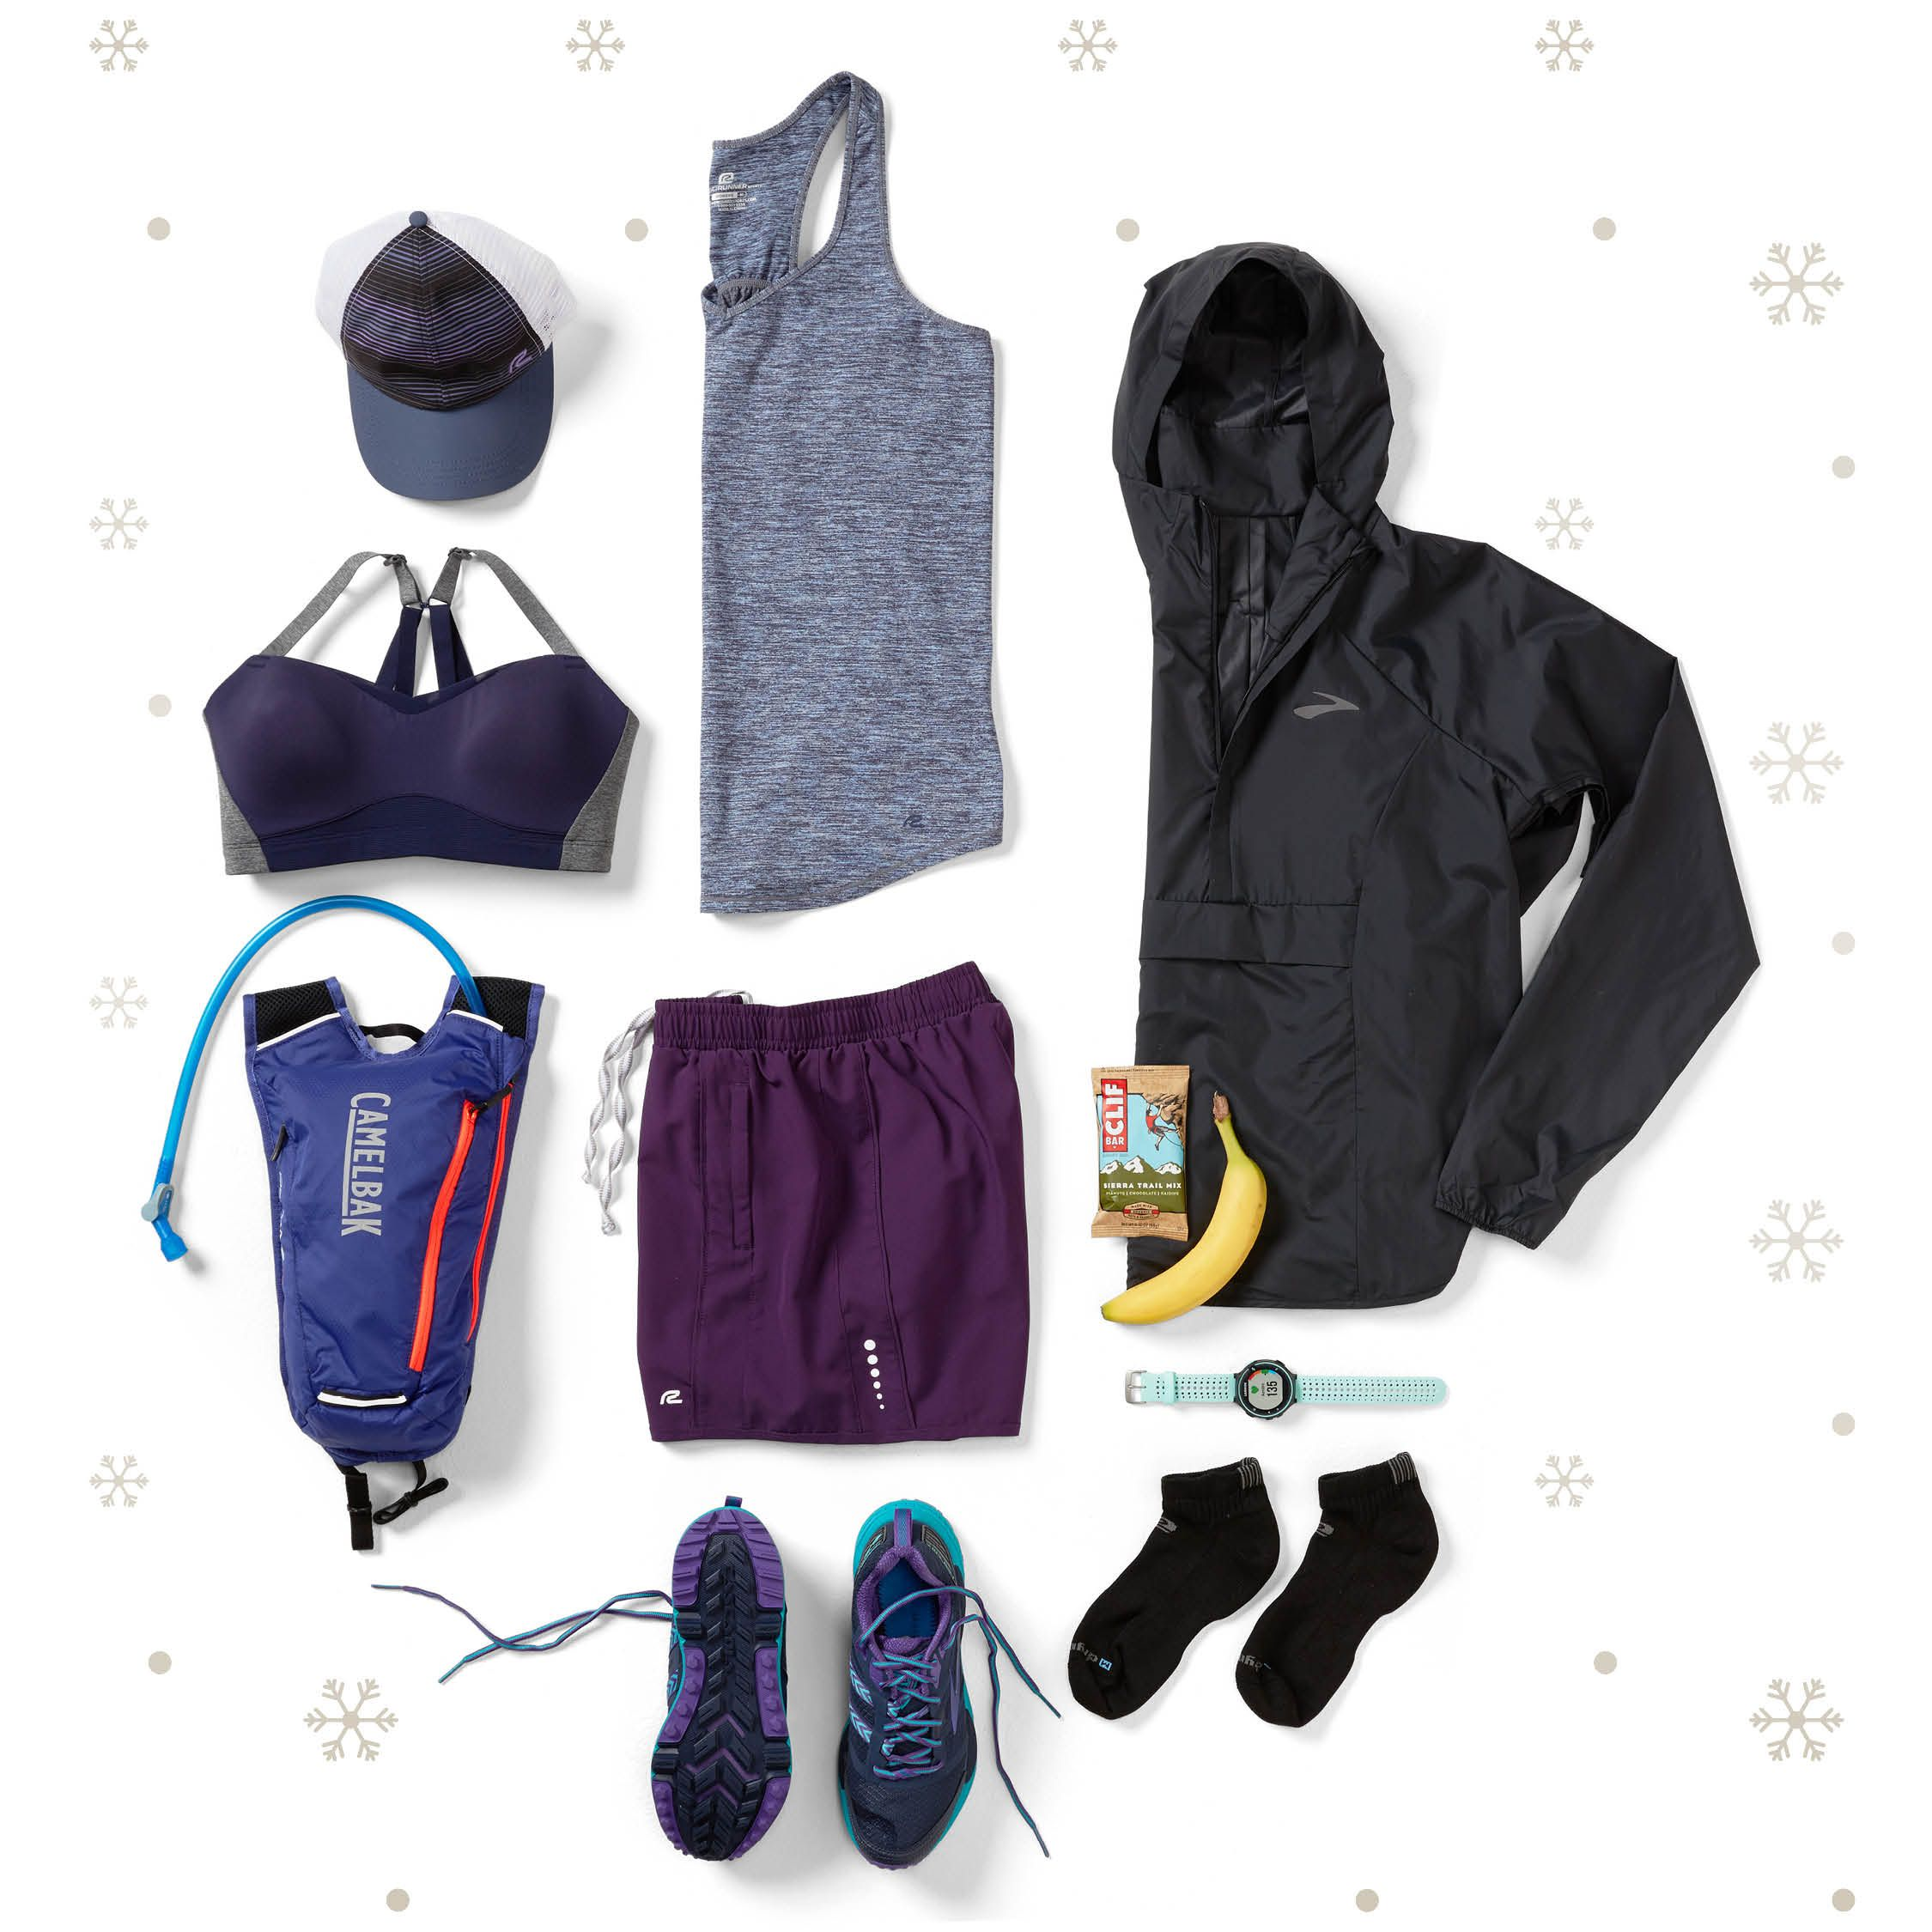 Gifts for the trail runner on your list gifts for